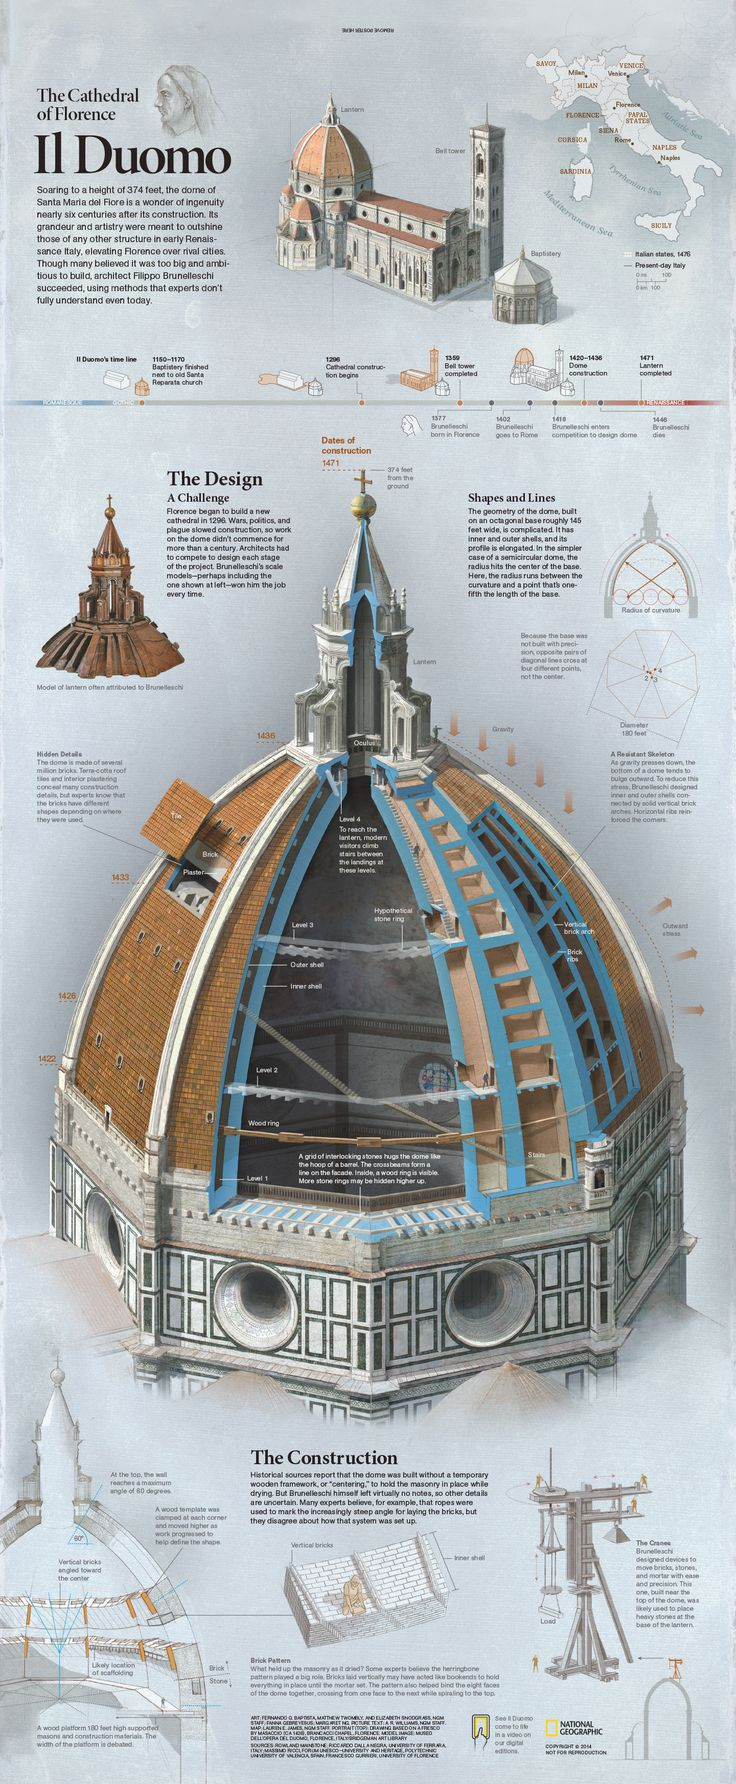 IL DUOMO --- The theories behind it's construction. More info at http://ngm.nationalgeographic.com/2014/02/il-duomo/mueller-text Published on February 2014. By Fernando Baptista.